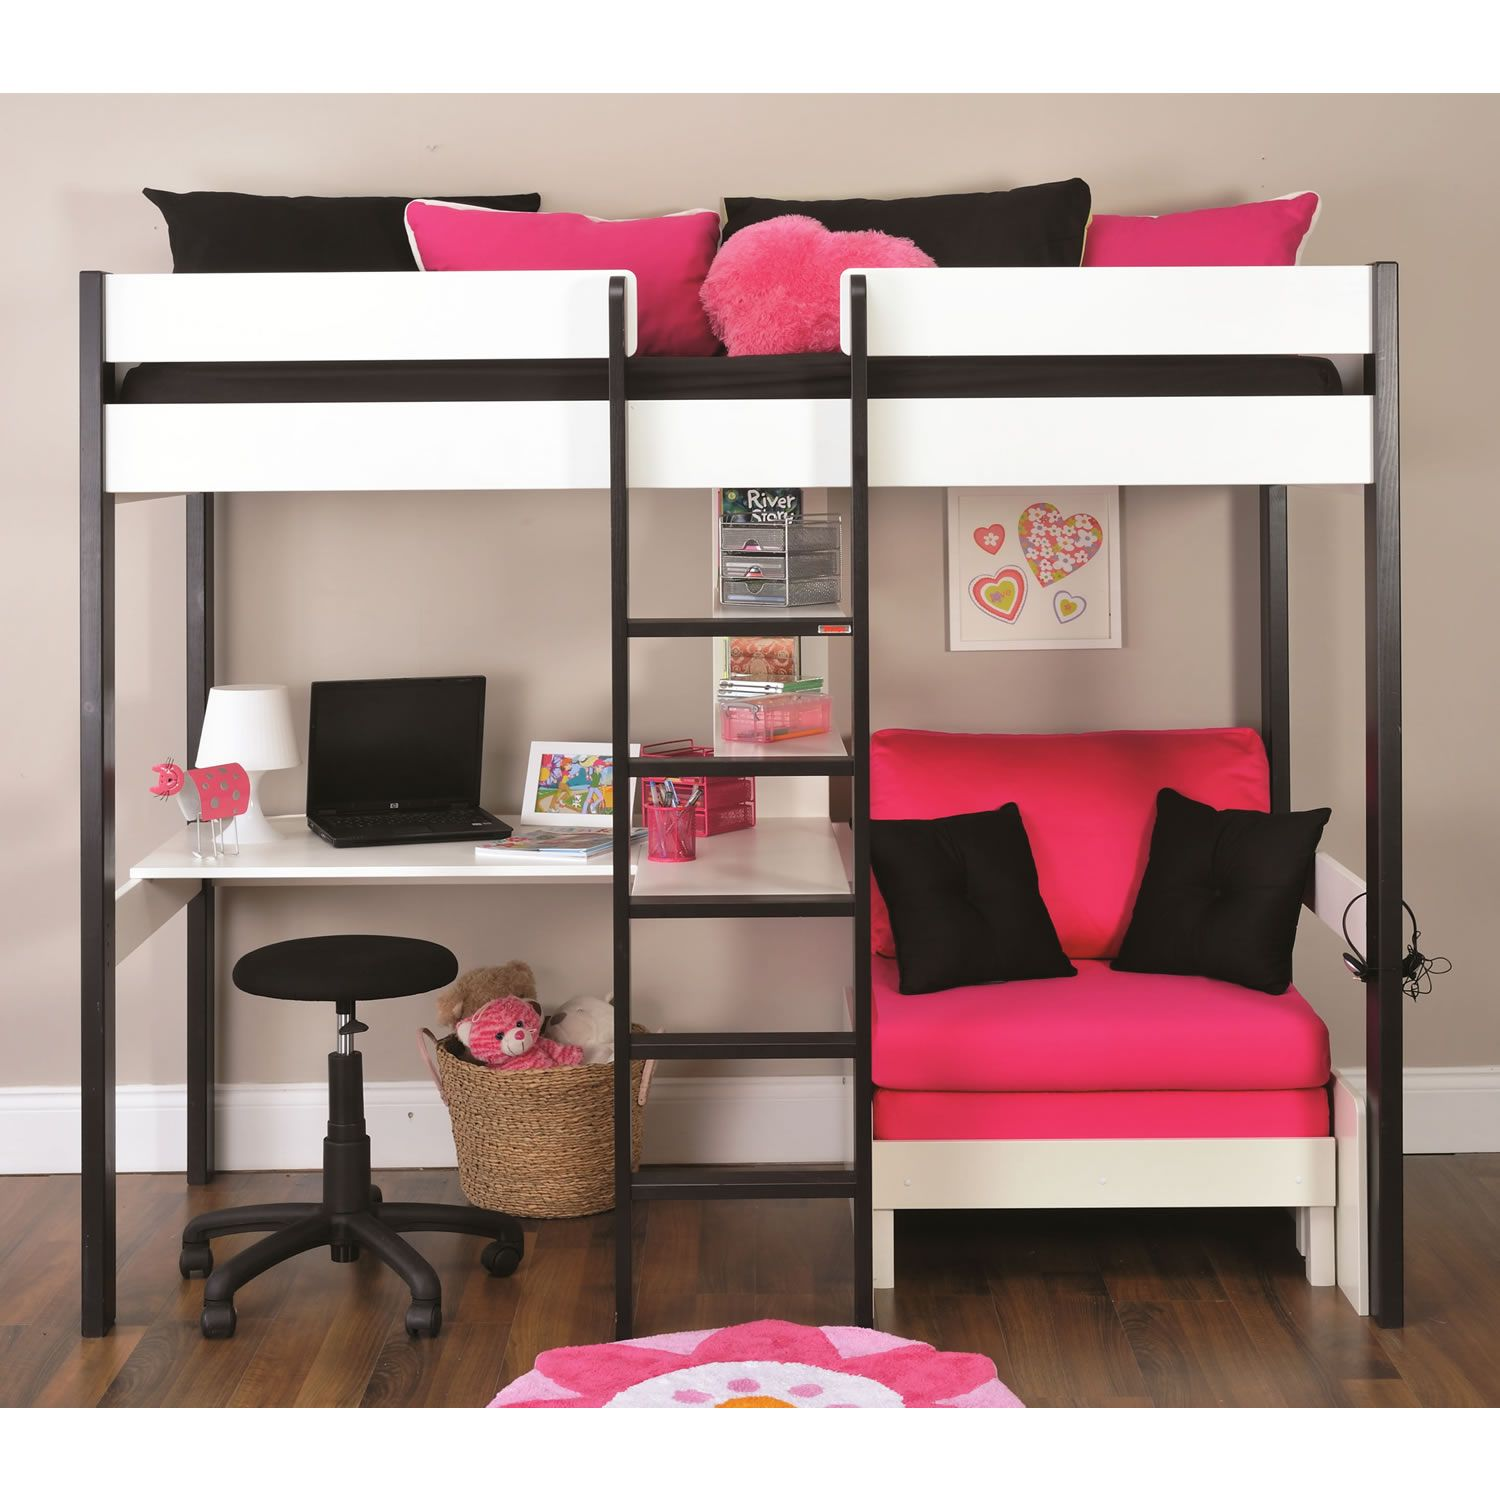 The stompa storage bunk bed frame provides sleeping space for 2 children and storage compartments under